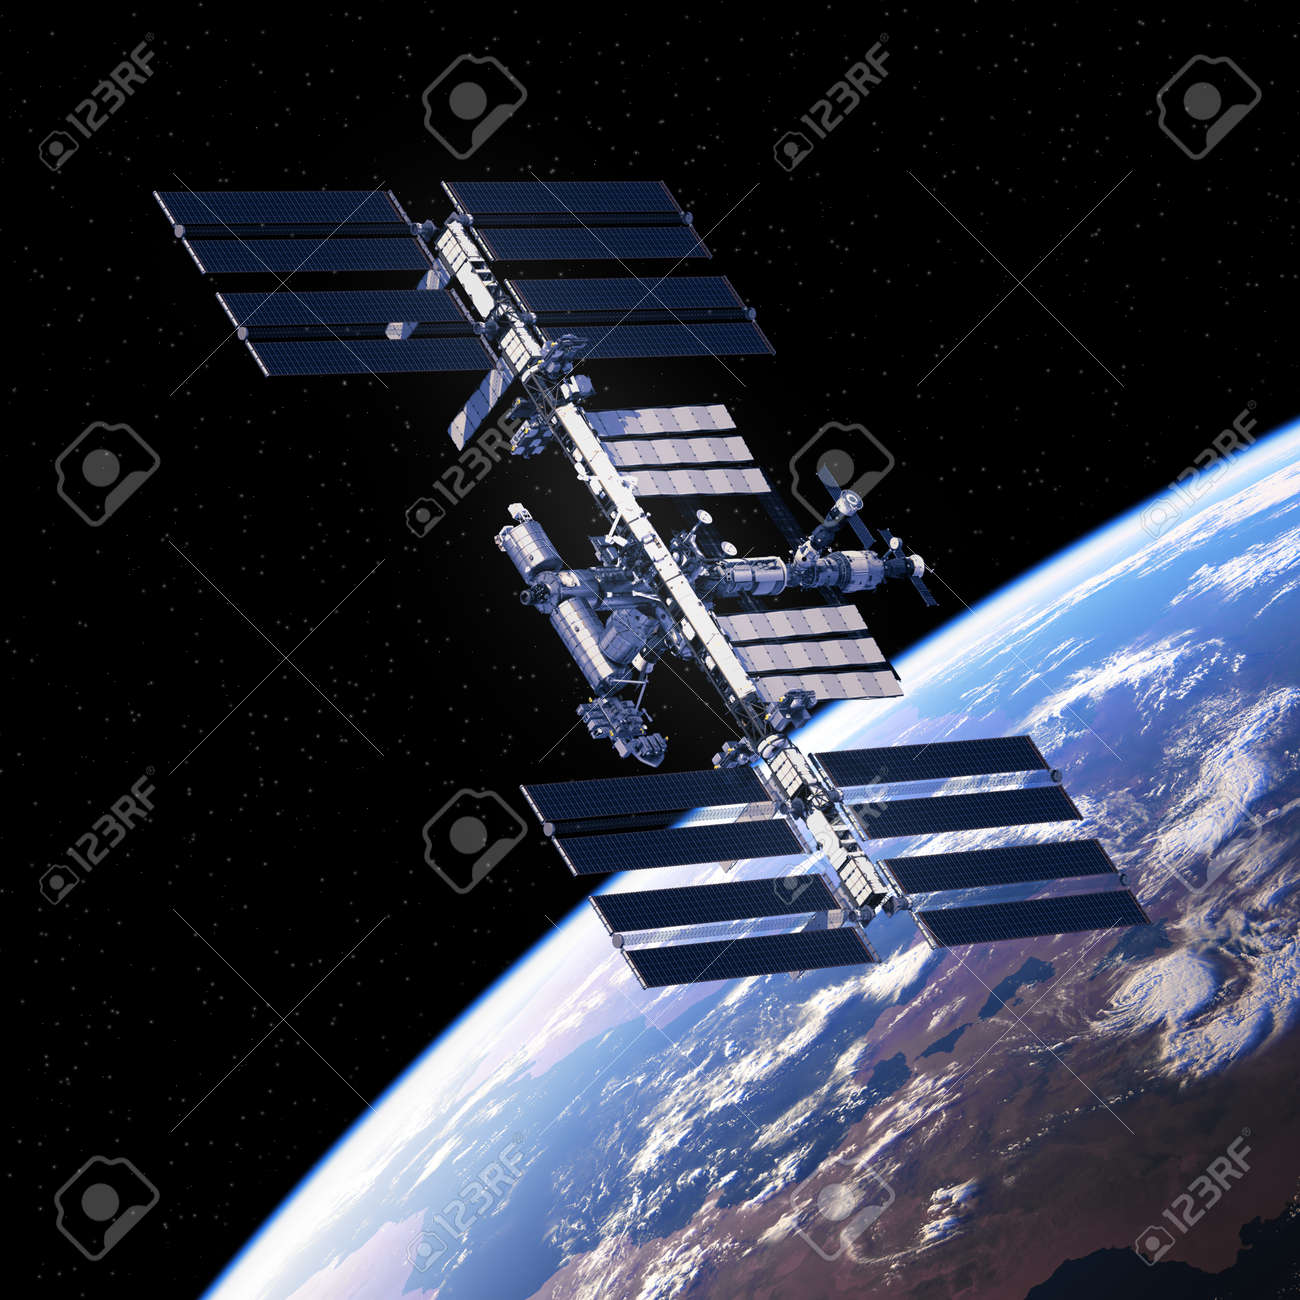 International Space Station Orbiting Planet Earth. - 73127874